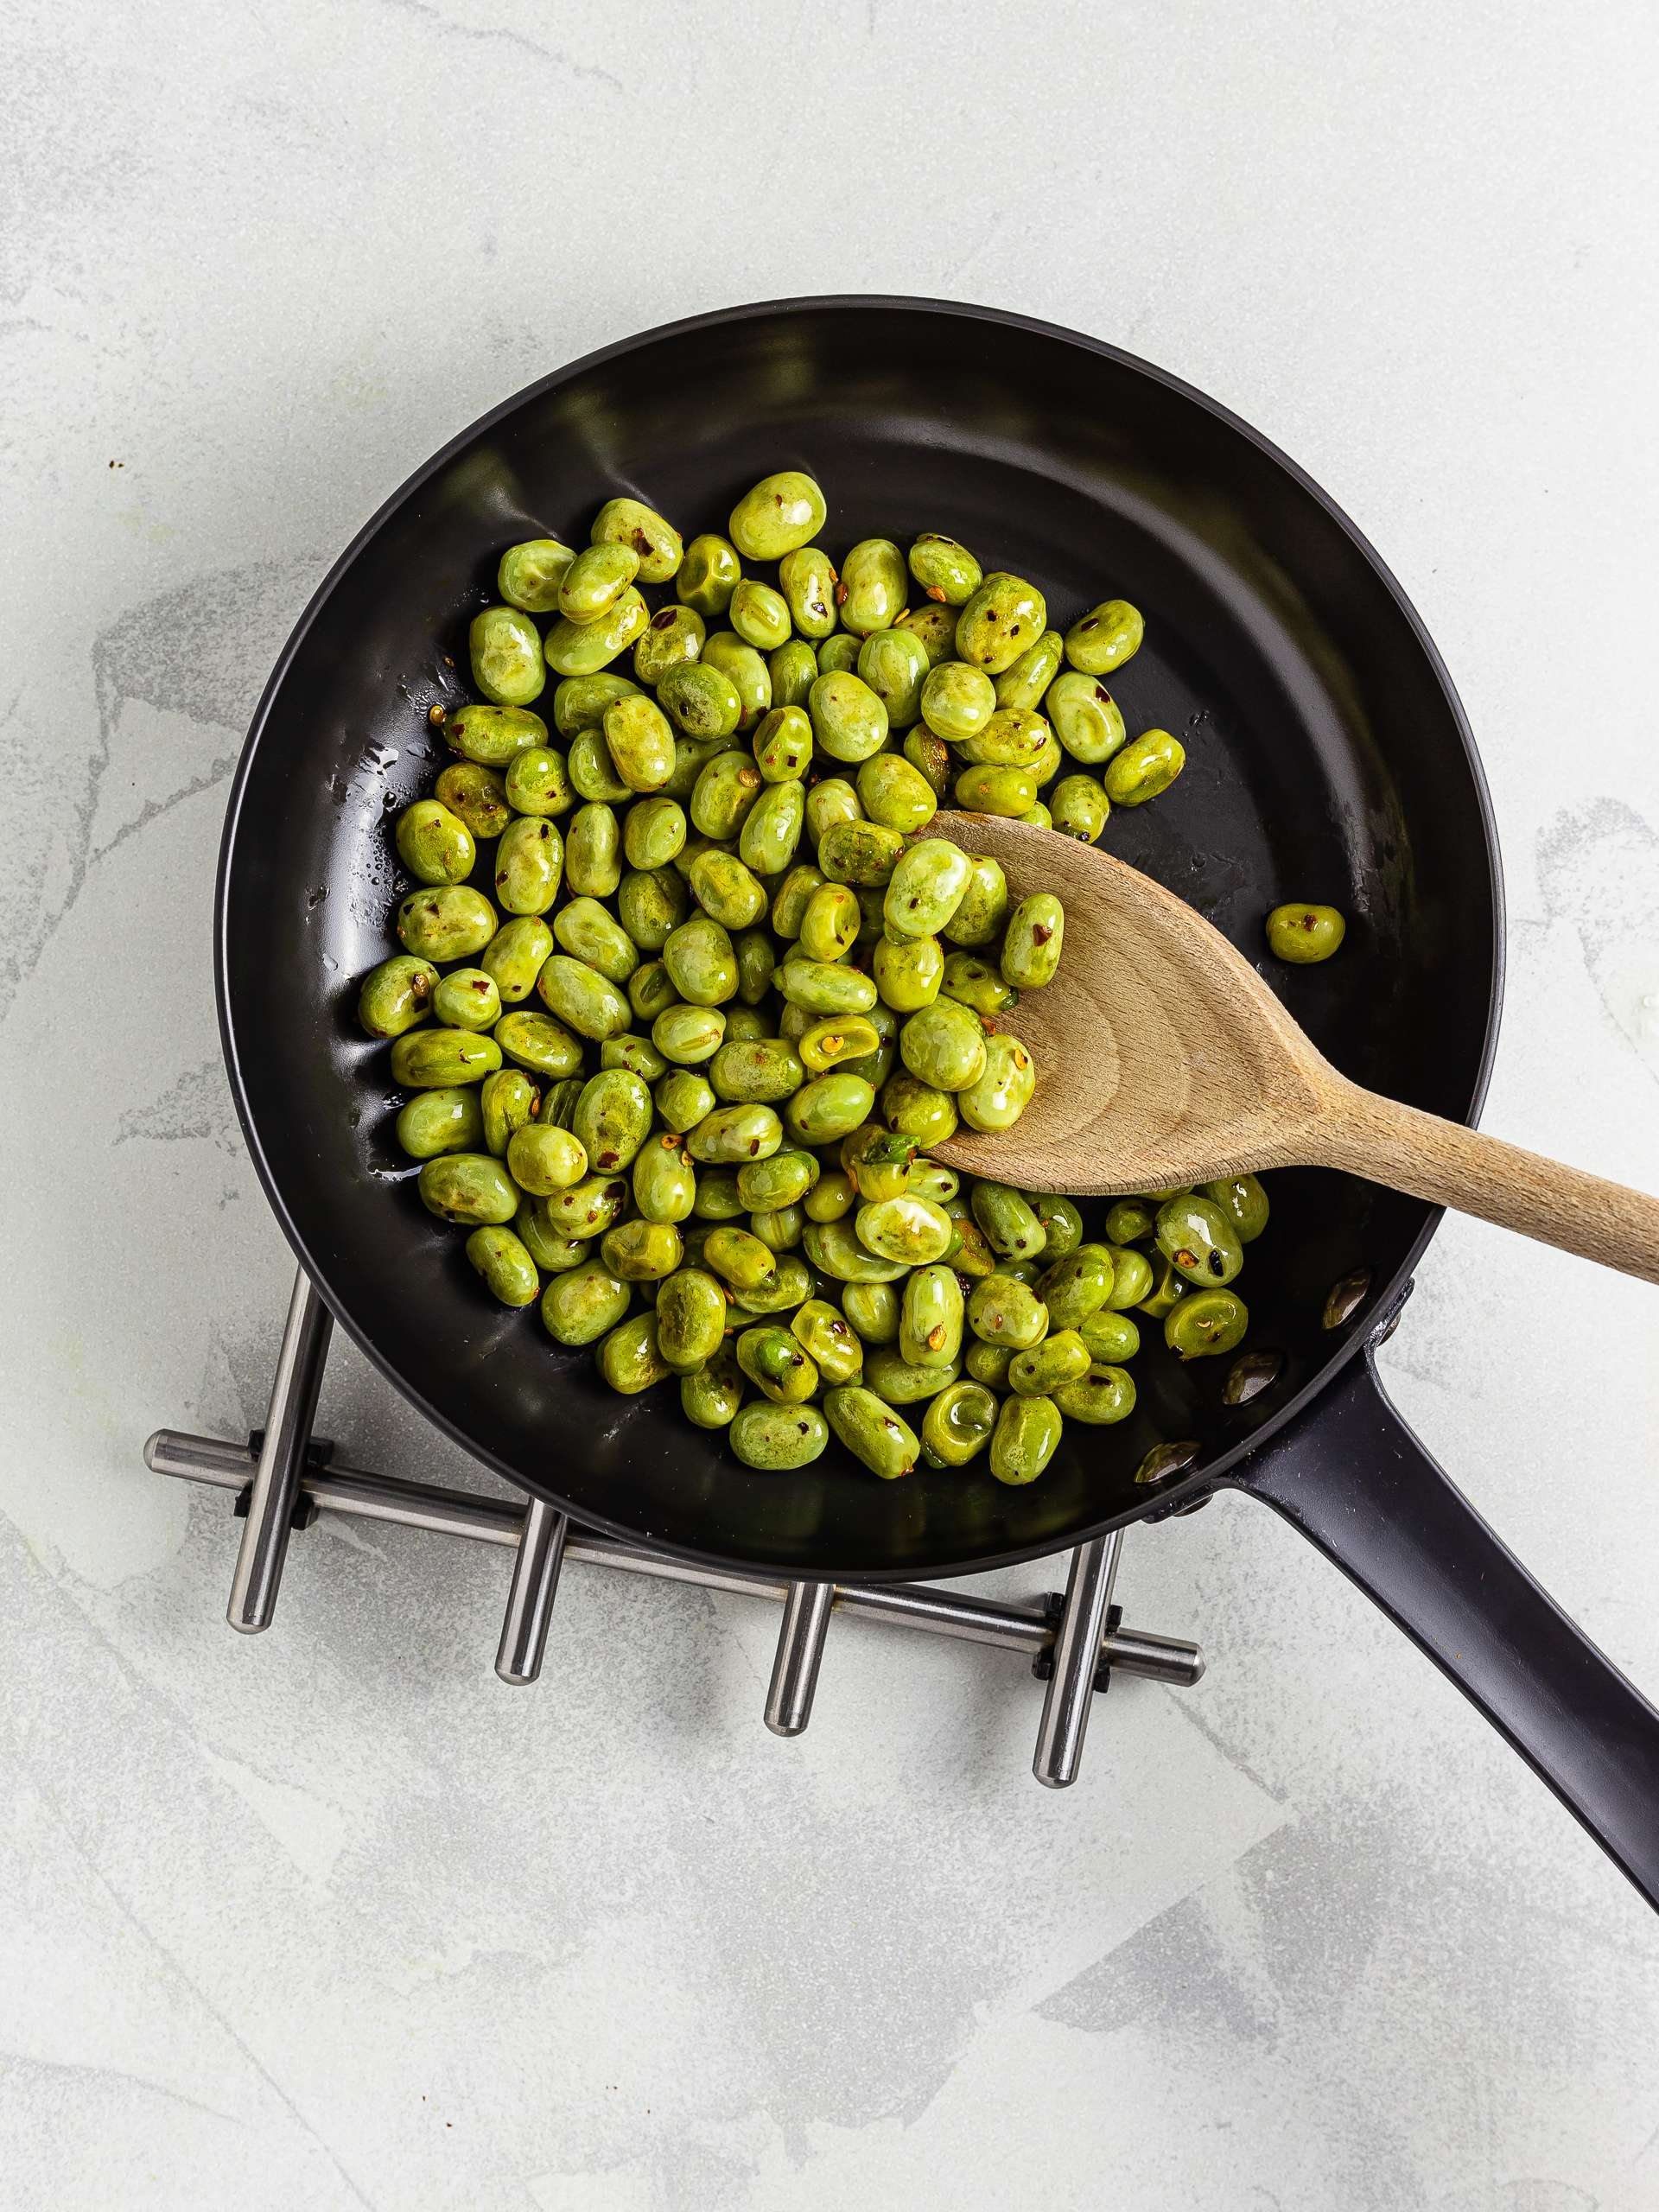 cooked broad beans in a pan